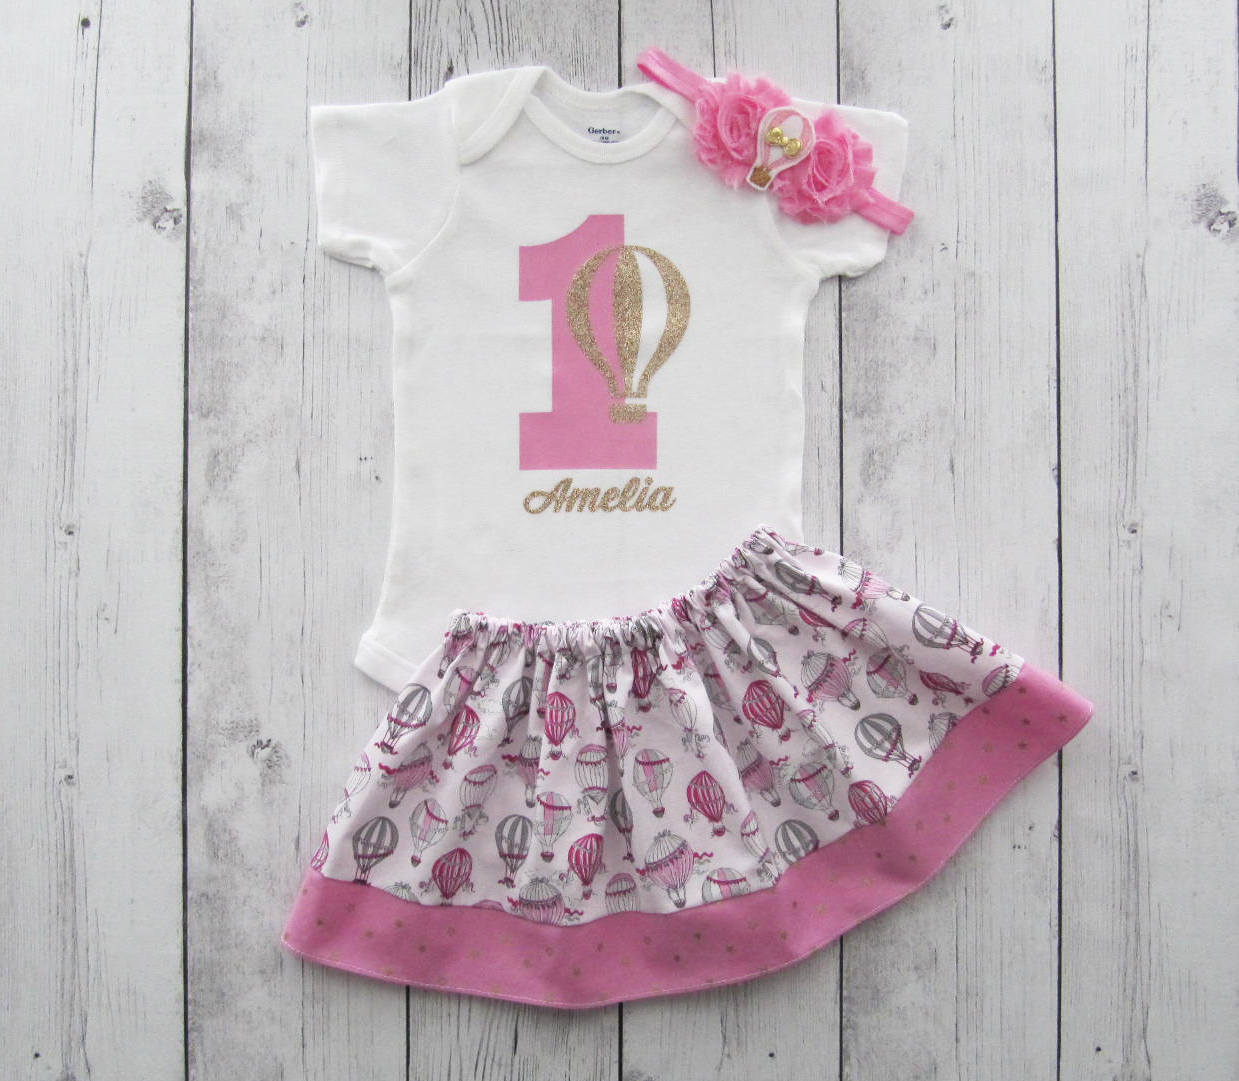 Pink Gold Hot Air Balloon Birthday Oufit for baby girl - gold bow, hot air balloon birthday outfit, girl first birthday outfit, pink gold